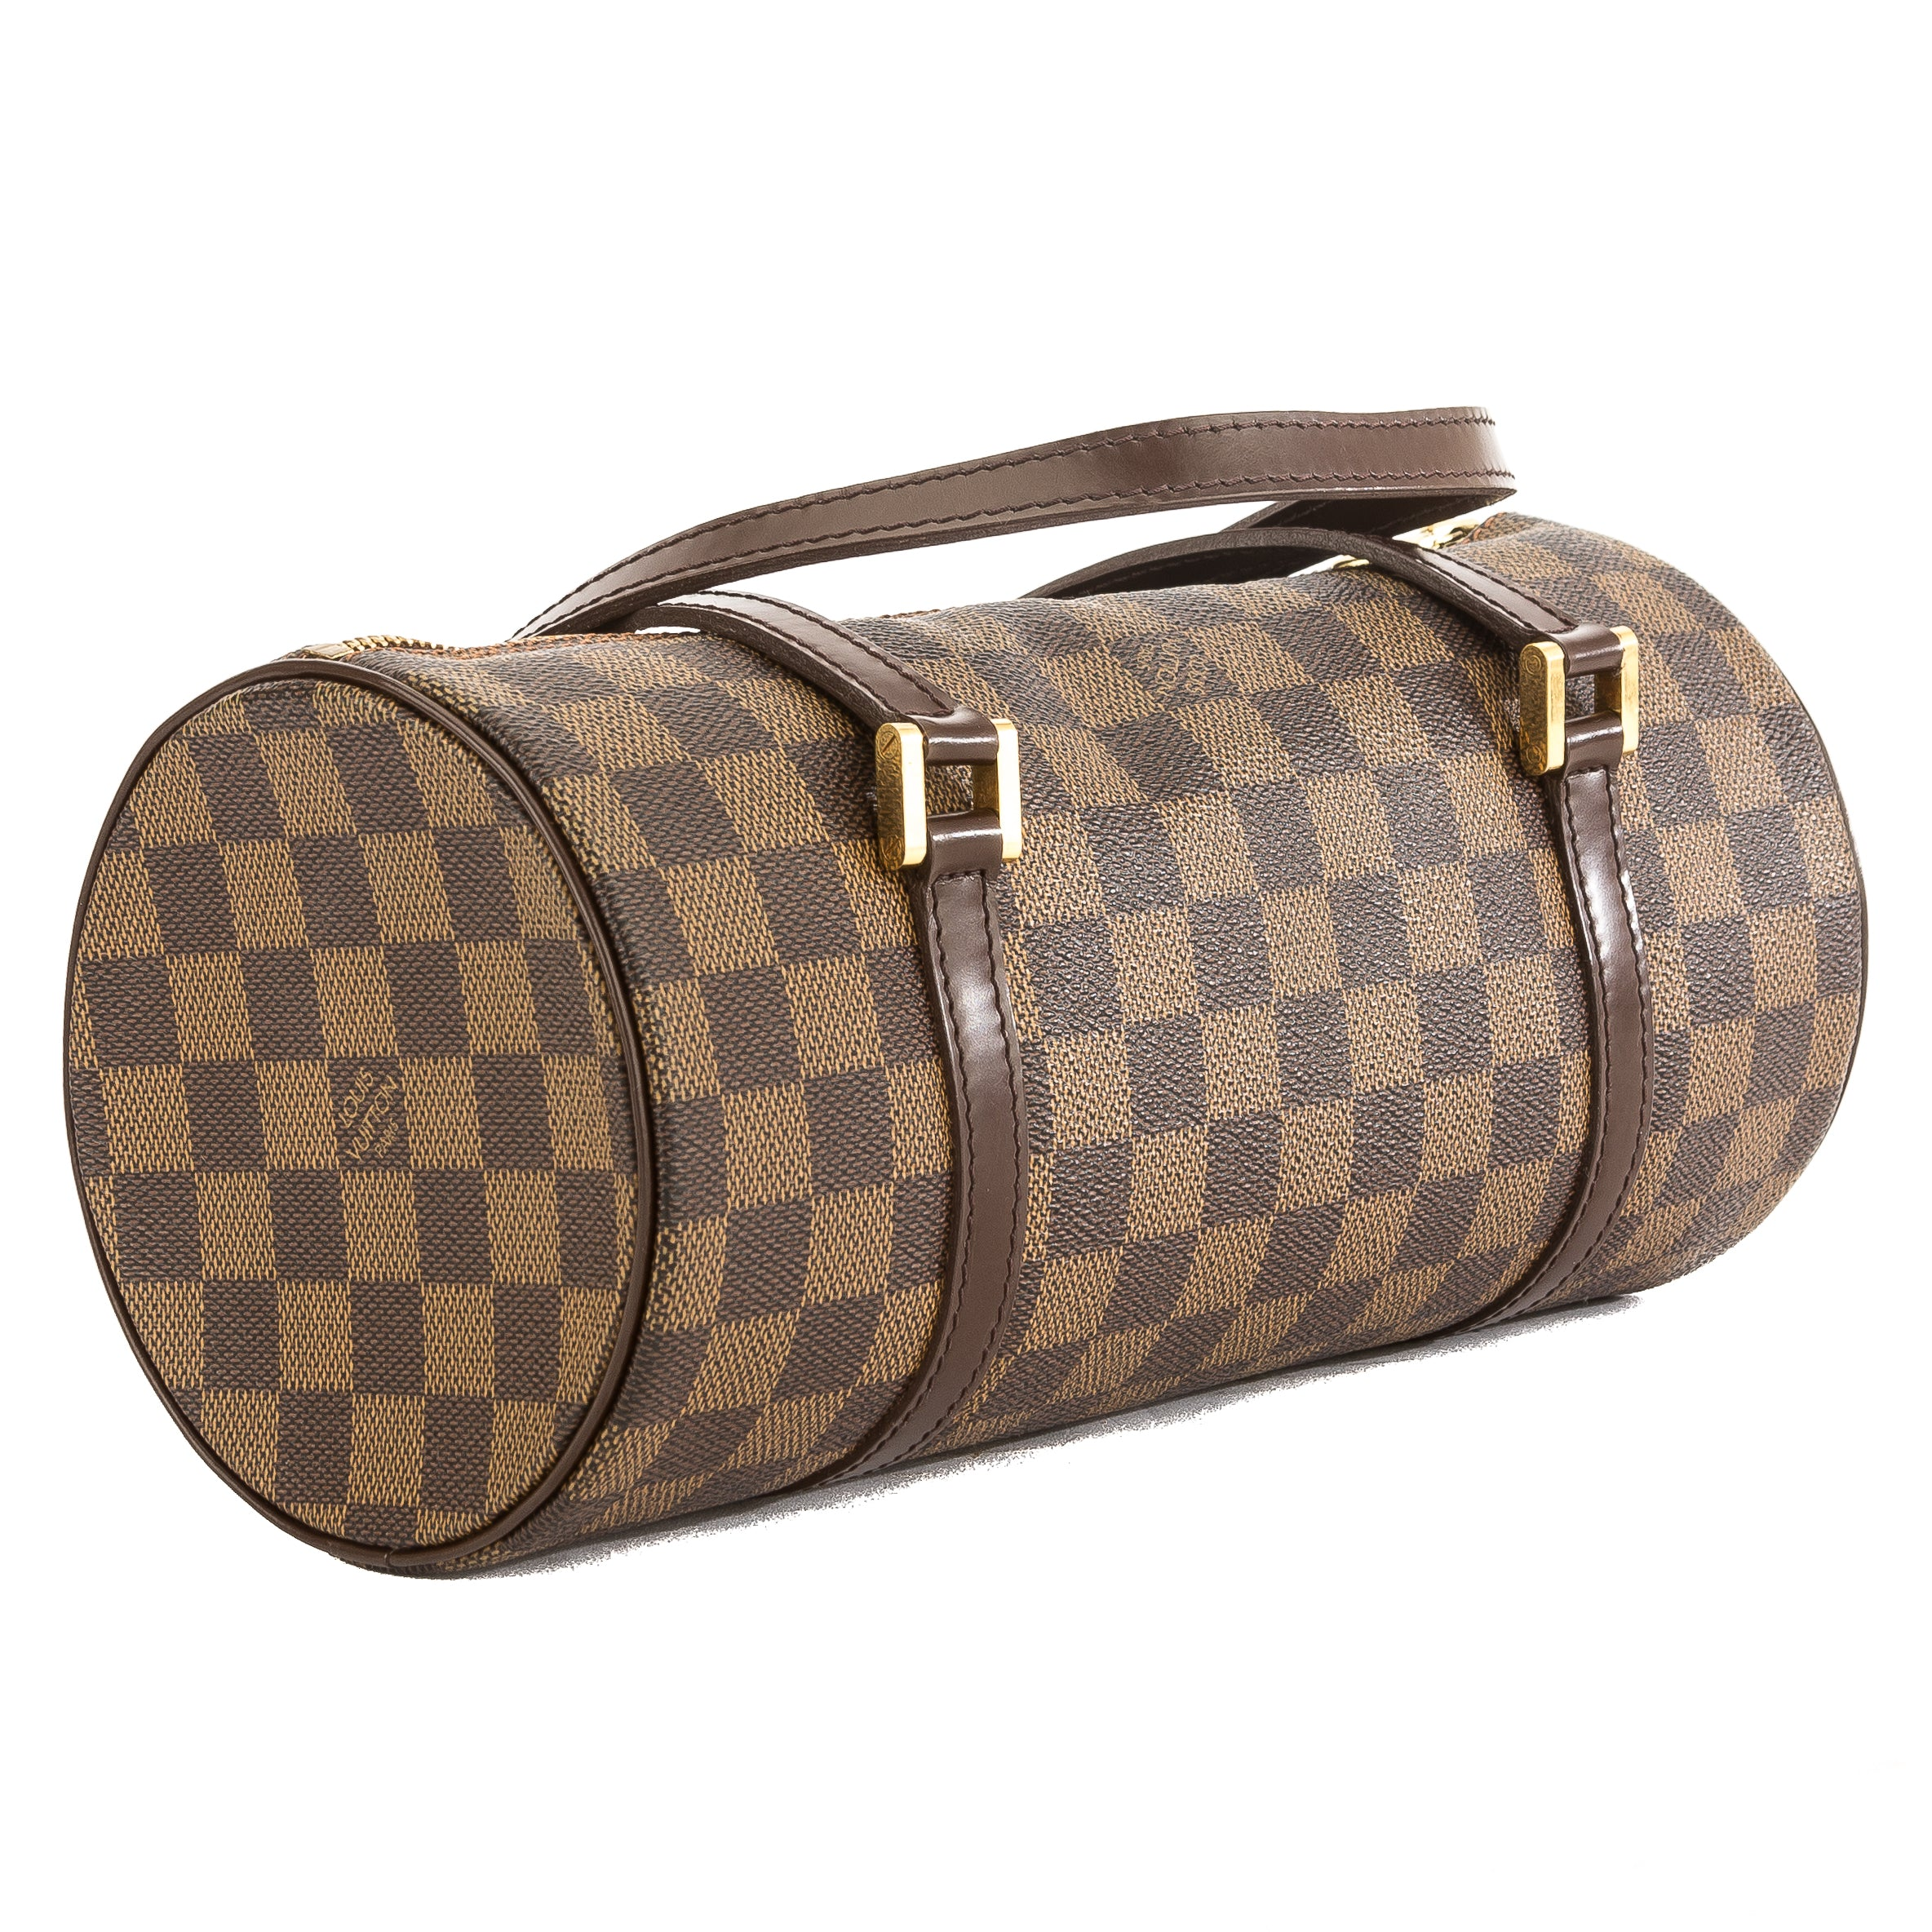 ed2f674c06d7 Louis Vuitton Damier Ebene Canvas Papillon 26 Bag (3862013) - 3862013